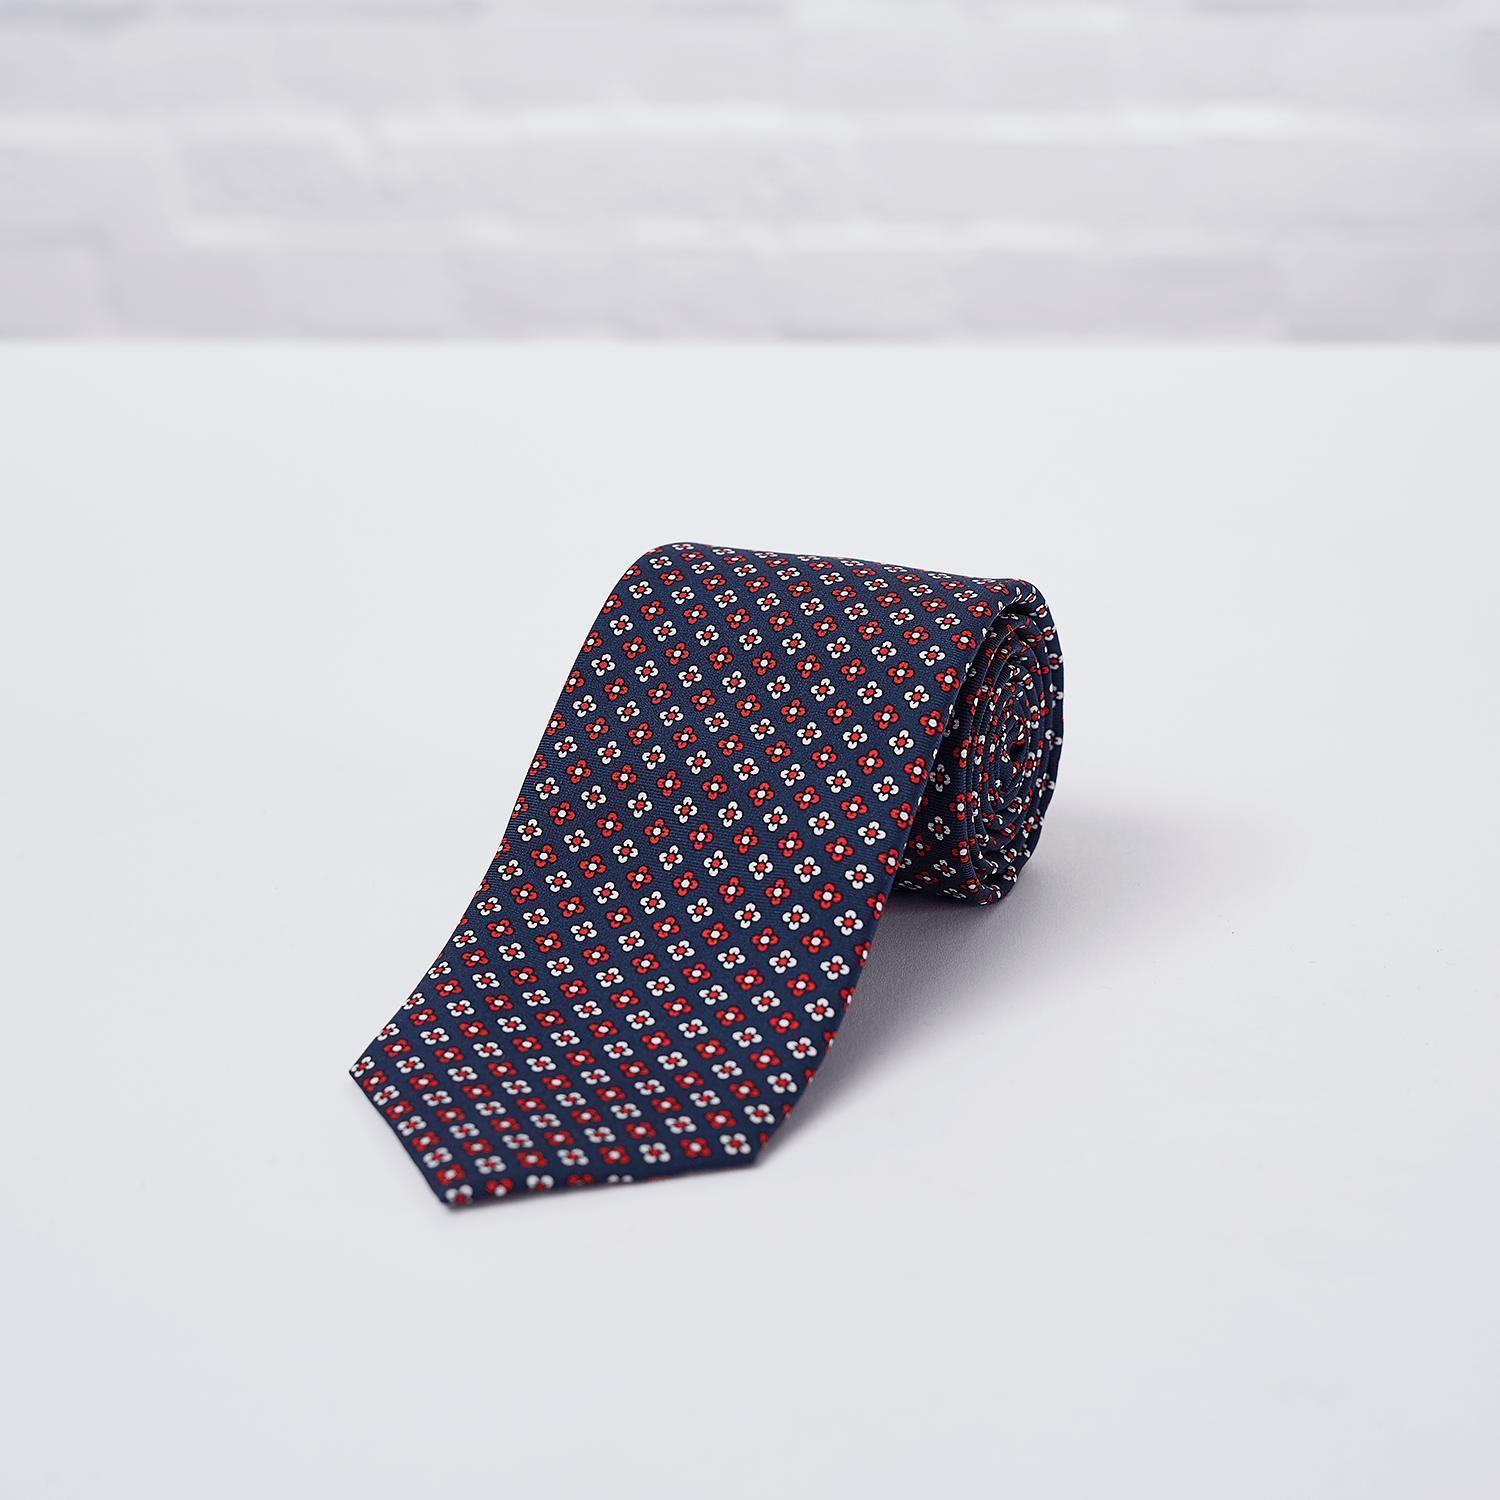 Navy Red Floral Printed Silk Tie - British Made